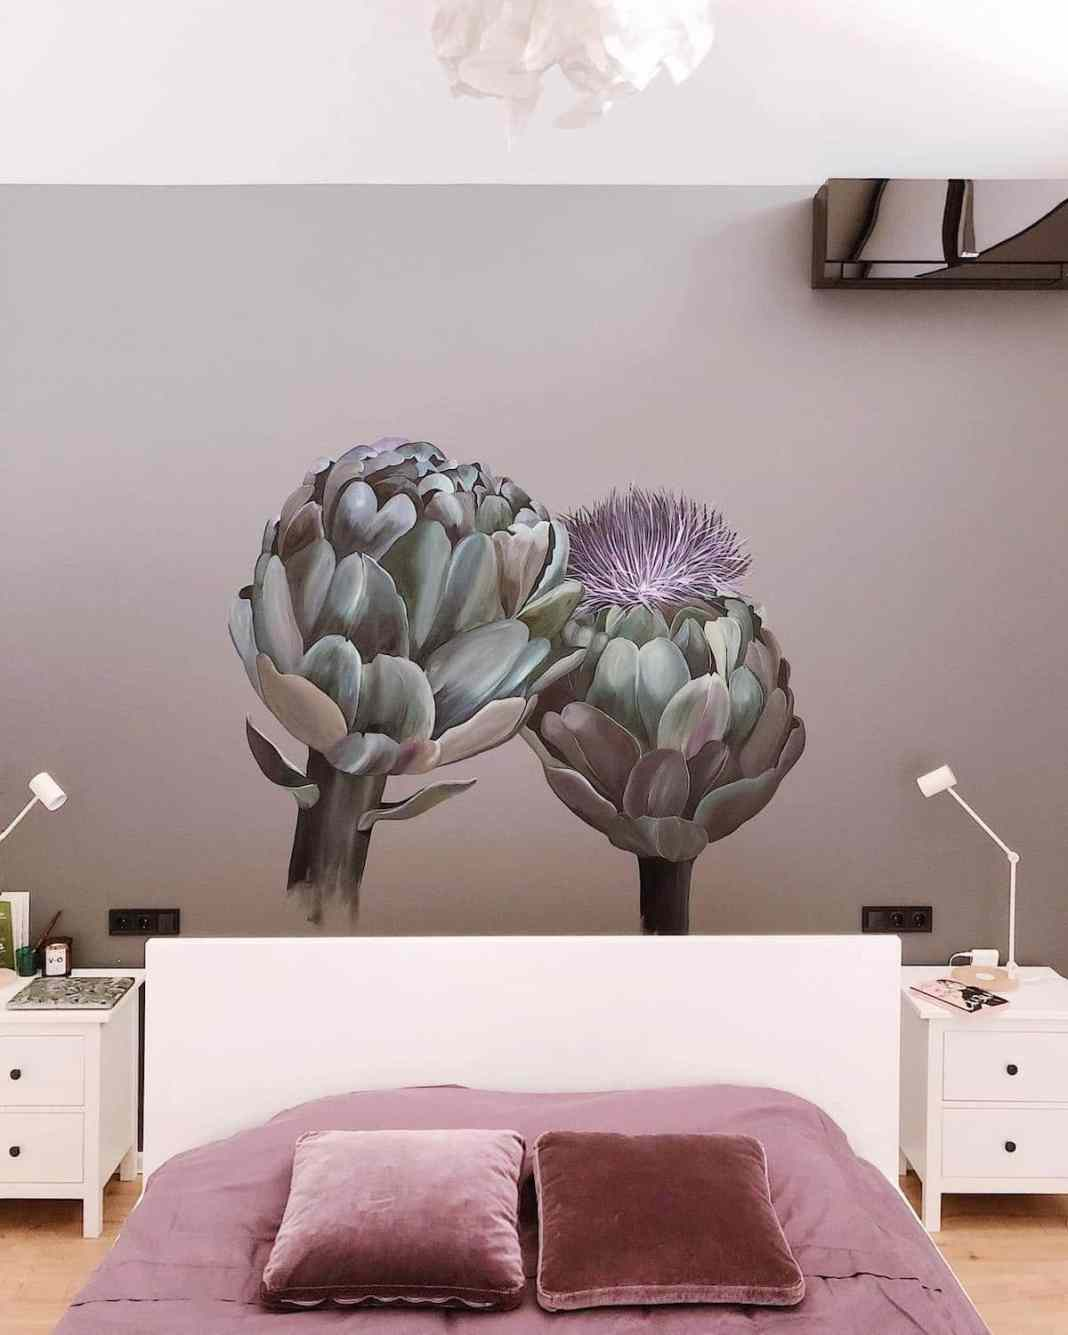 Flower Mural Wall Art by Lilit Sargsyan